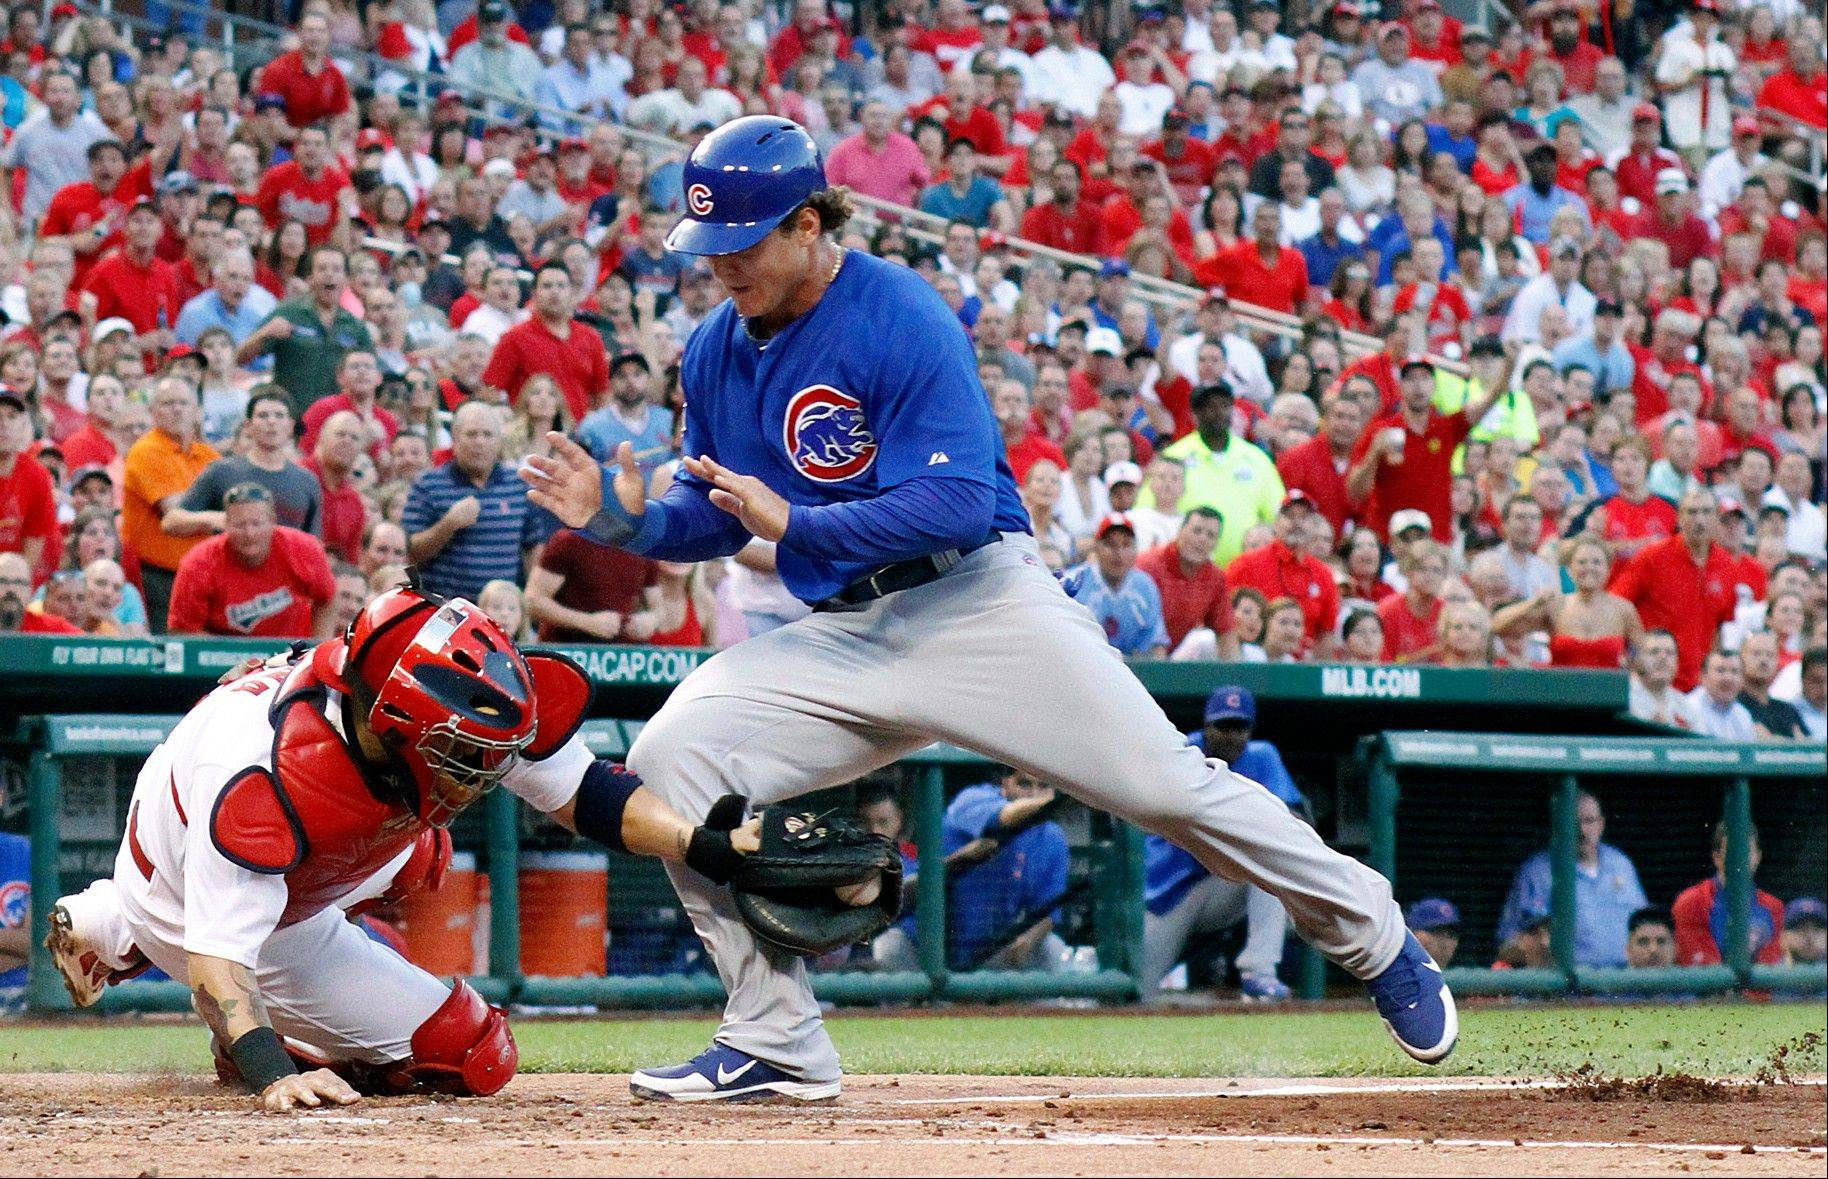 The Cubs' Anthony Rizzo is tagged by Cardinals catcher Yadier Molina -- but he manages to knock the ball loose and score during Wednesday's game at Busch Stadium in St. Louis.